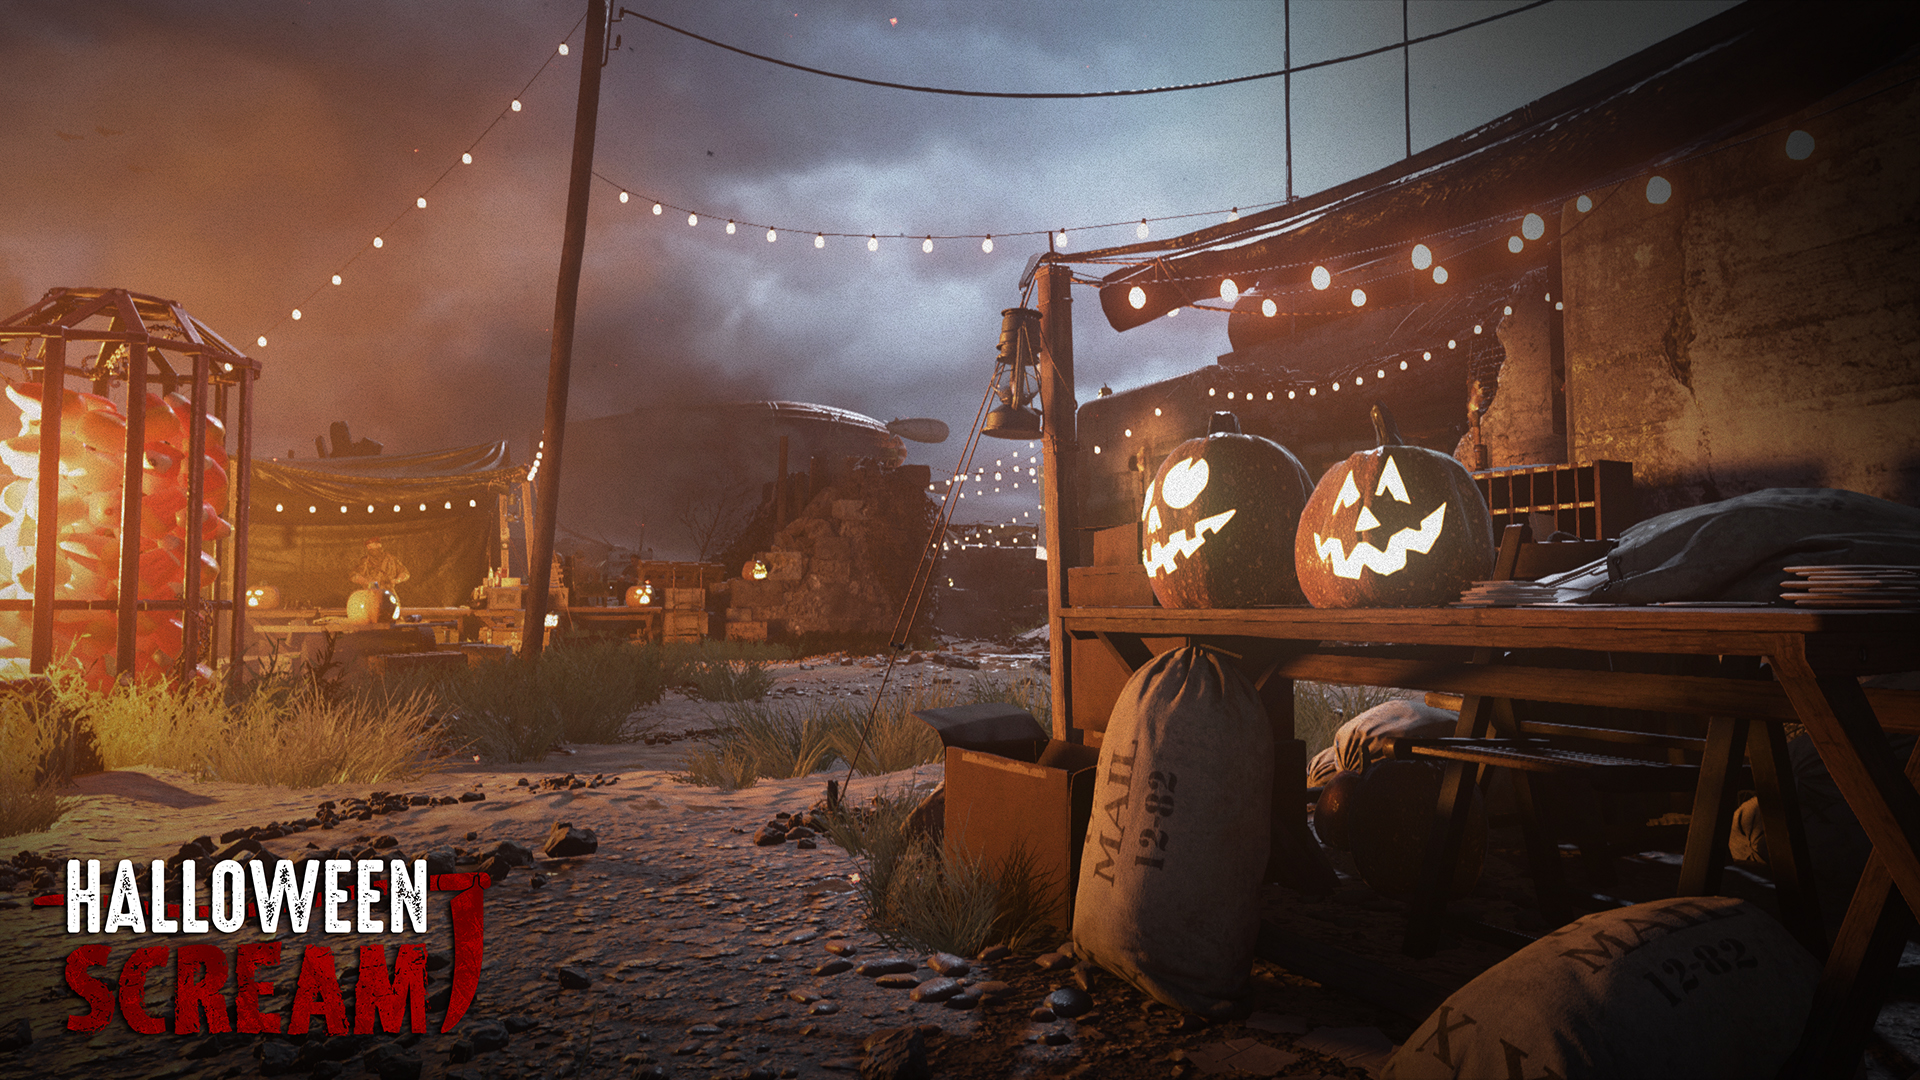 shgames teases new halloween scream event for call of duty: wwii